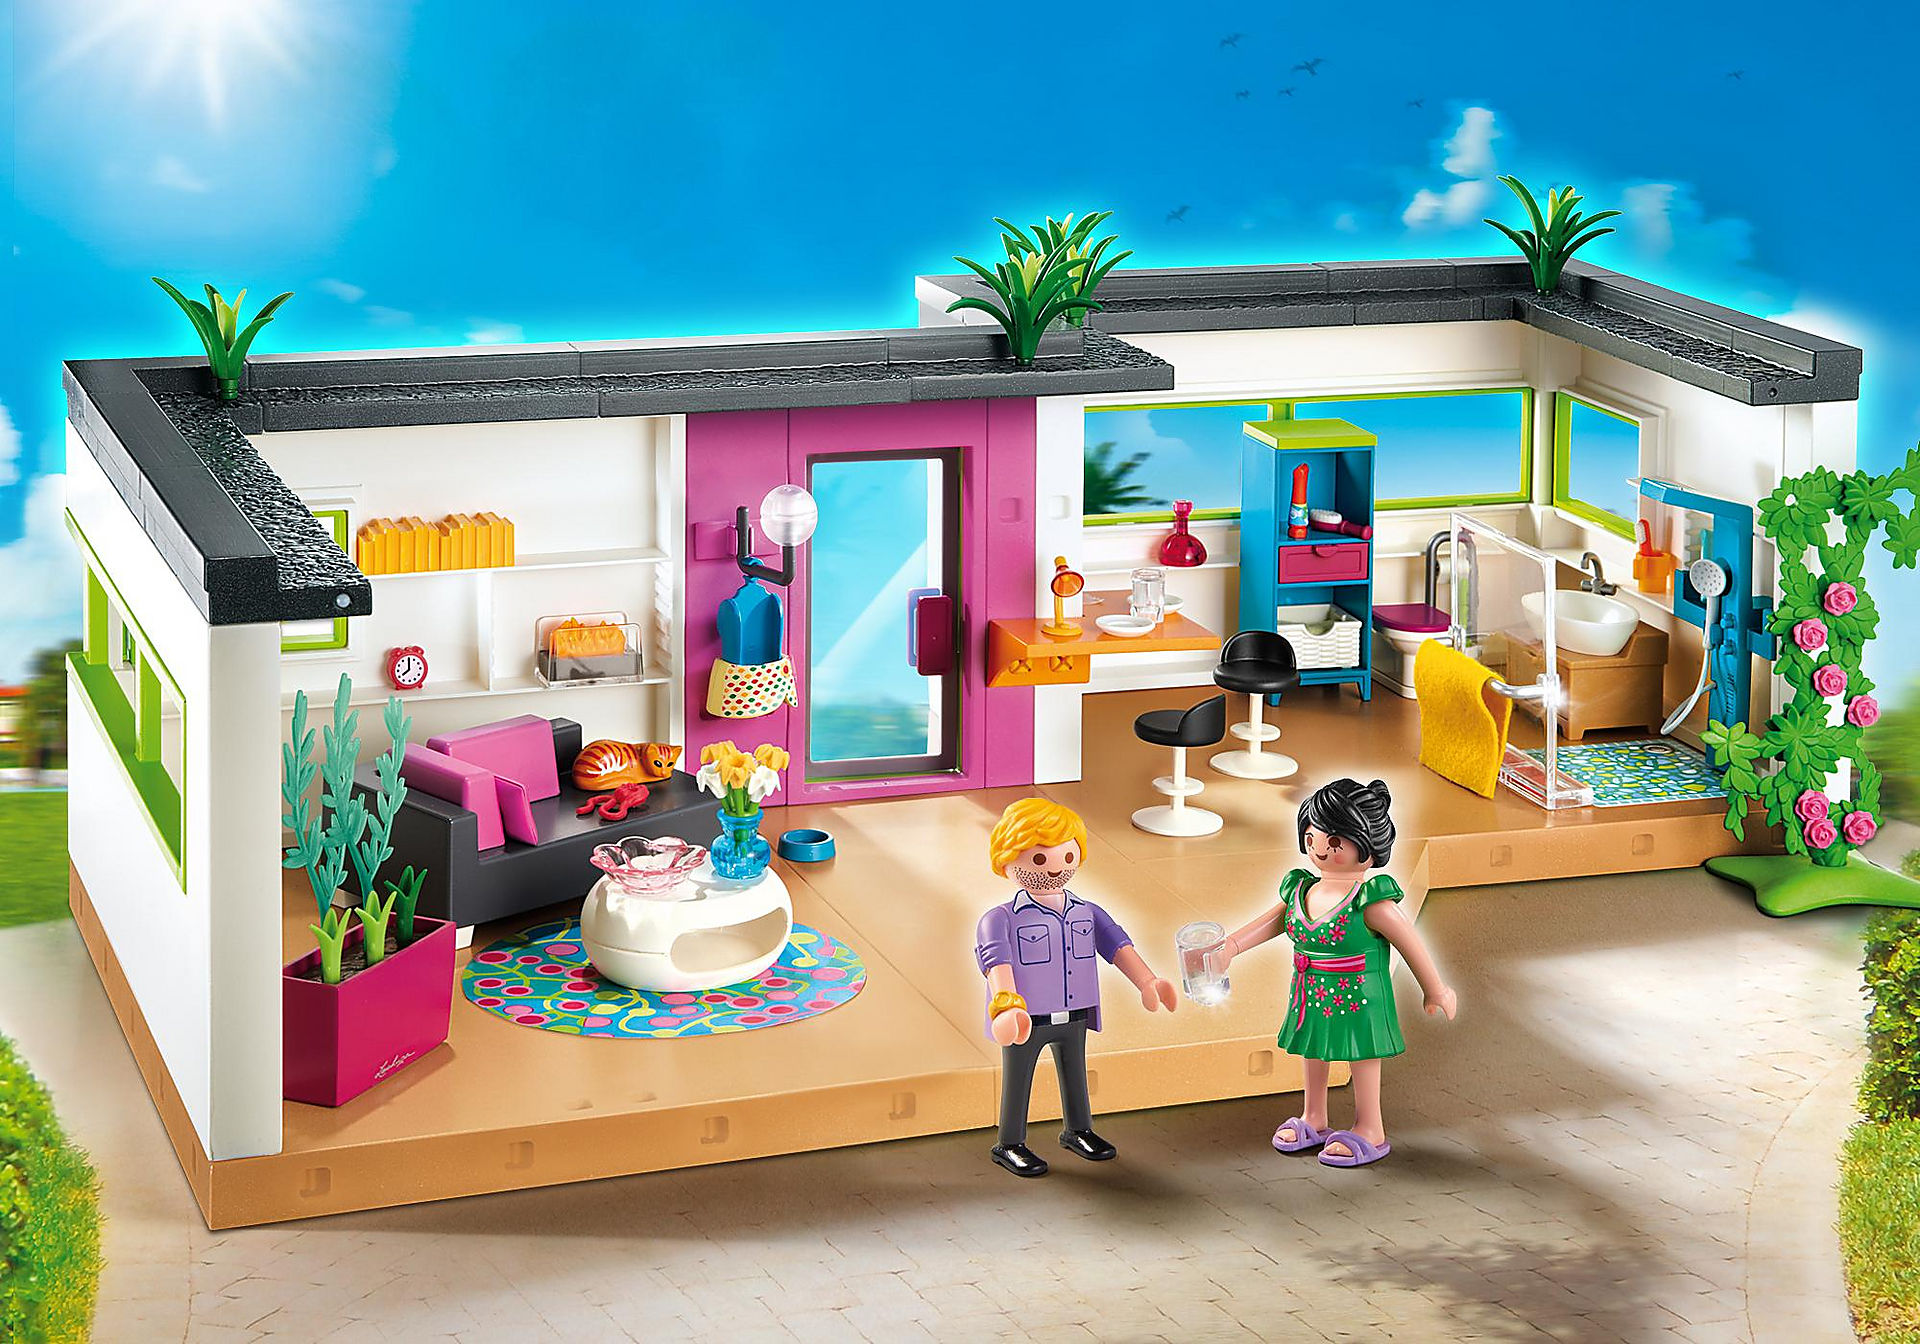 http://media.playmobil.com/i/playmobil/5586_product_detail/Gästebungalow